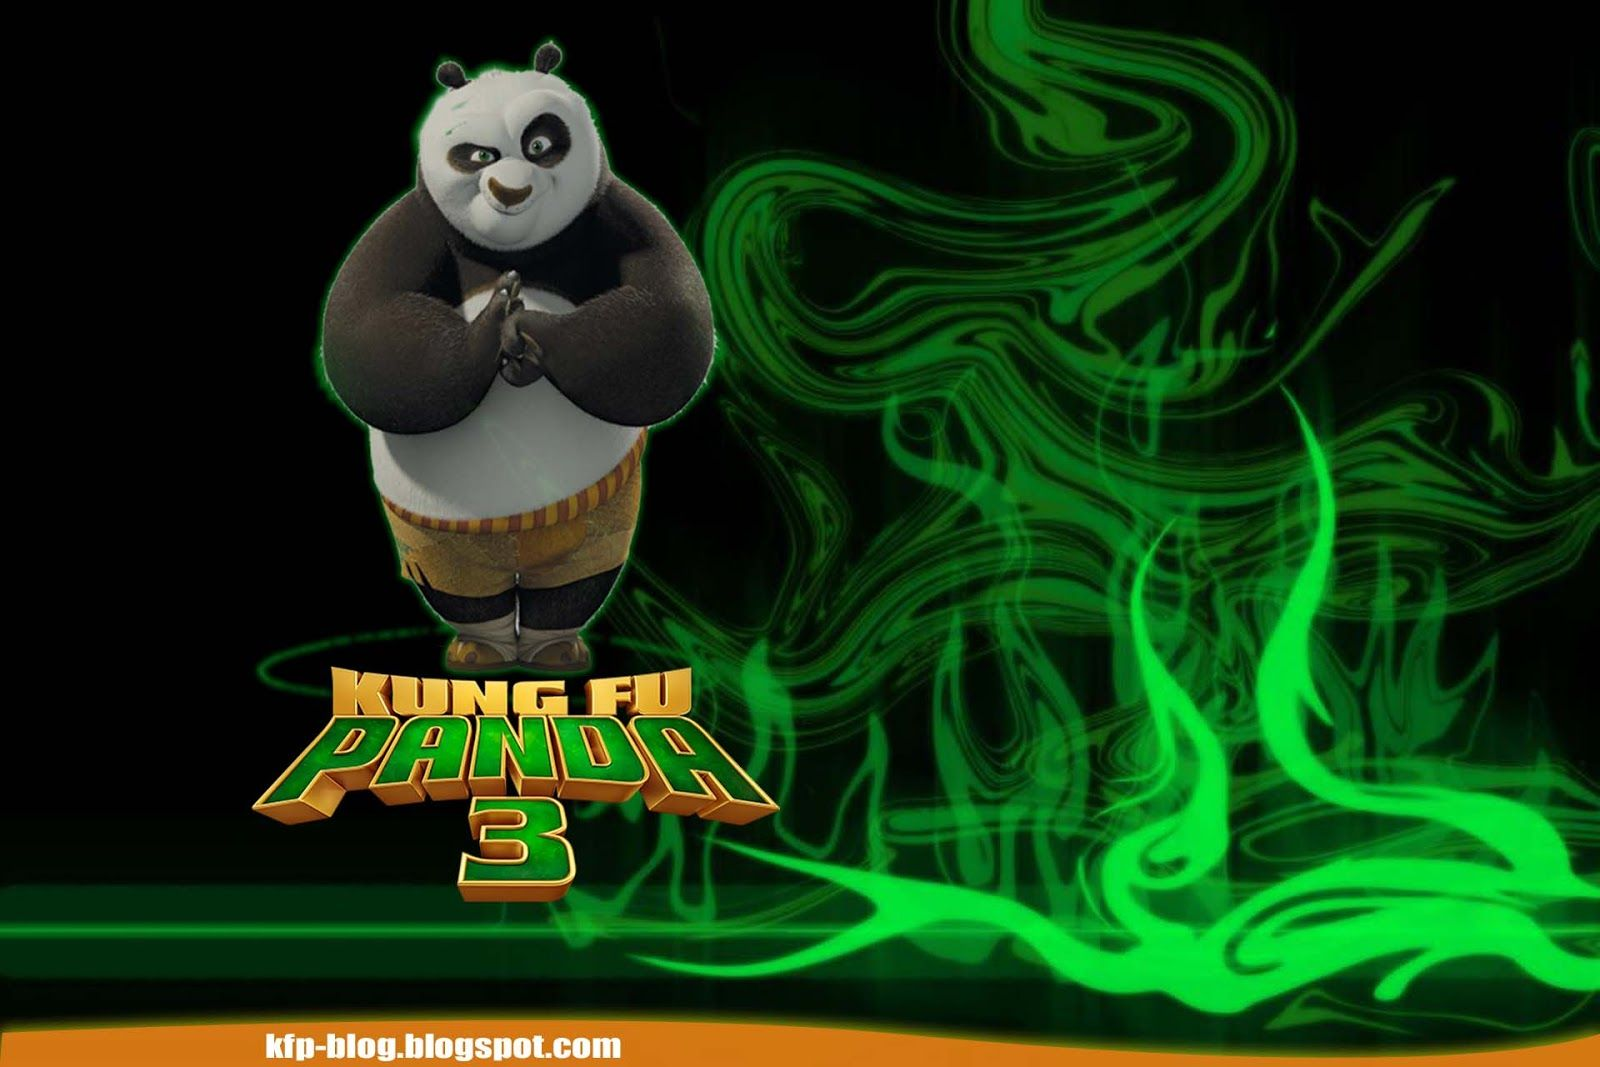 kung fu panda 3 (2016) hd wallpapers for desktop and mobiles | kung